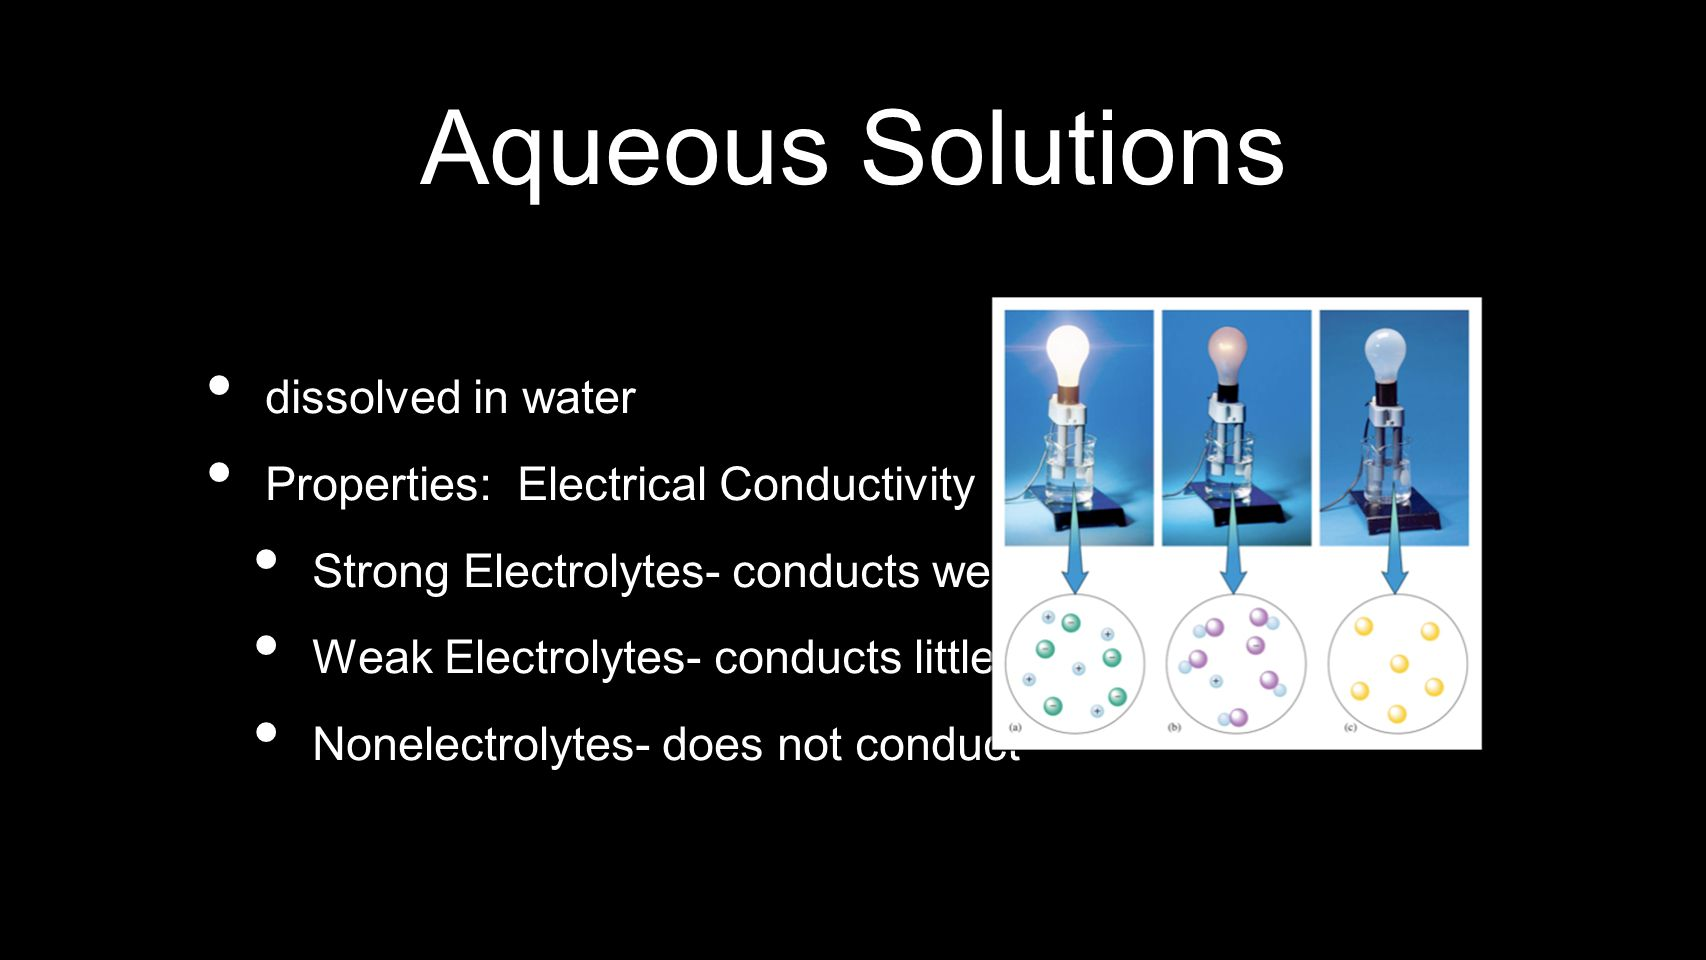 Aqueous Solutions dissolved in water Properties: Electrical Conductivity Strong Electrolytes- conducts well Weak Electrolytes- conducts little Nonelec